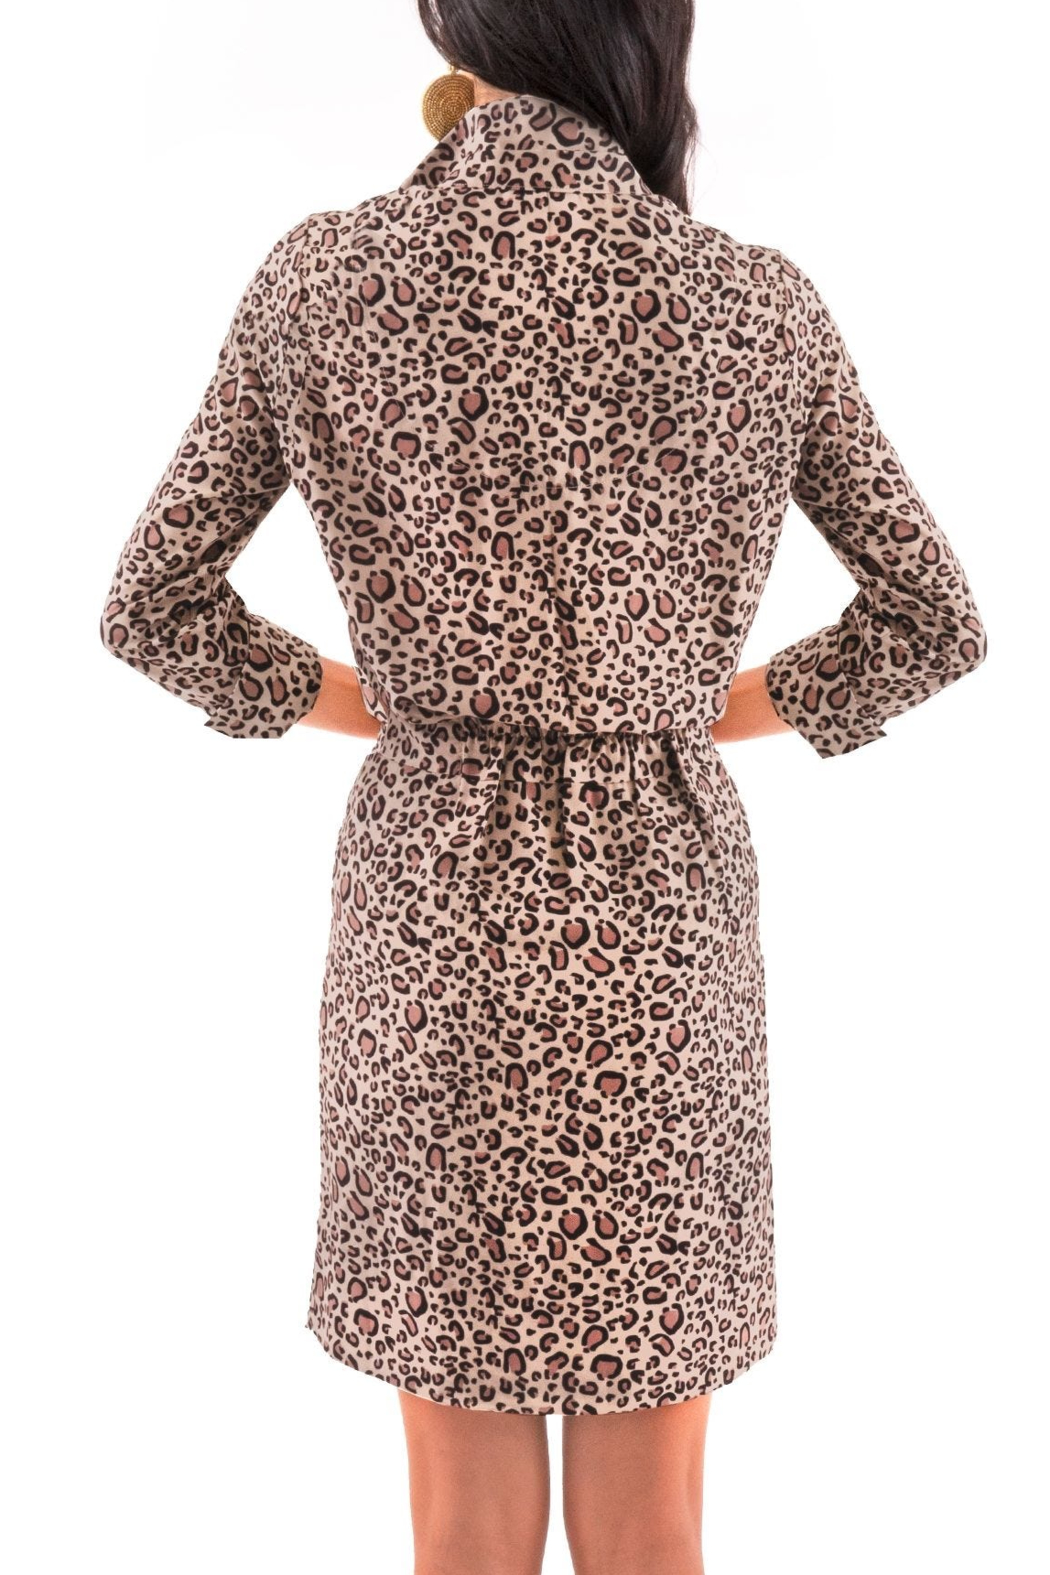 Gretchen Scott Breezy Blouson Dress - Side Cropped Image